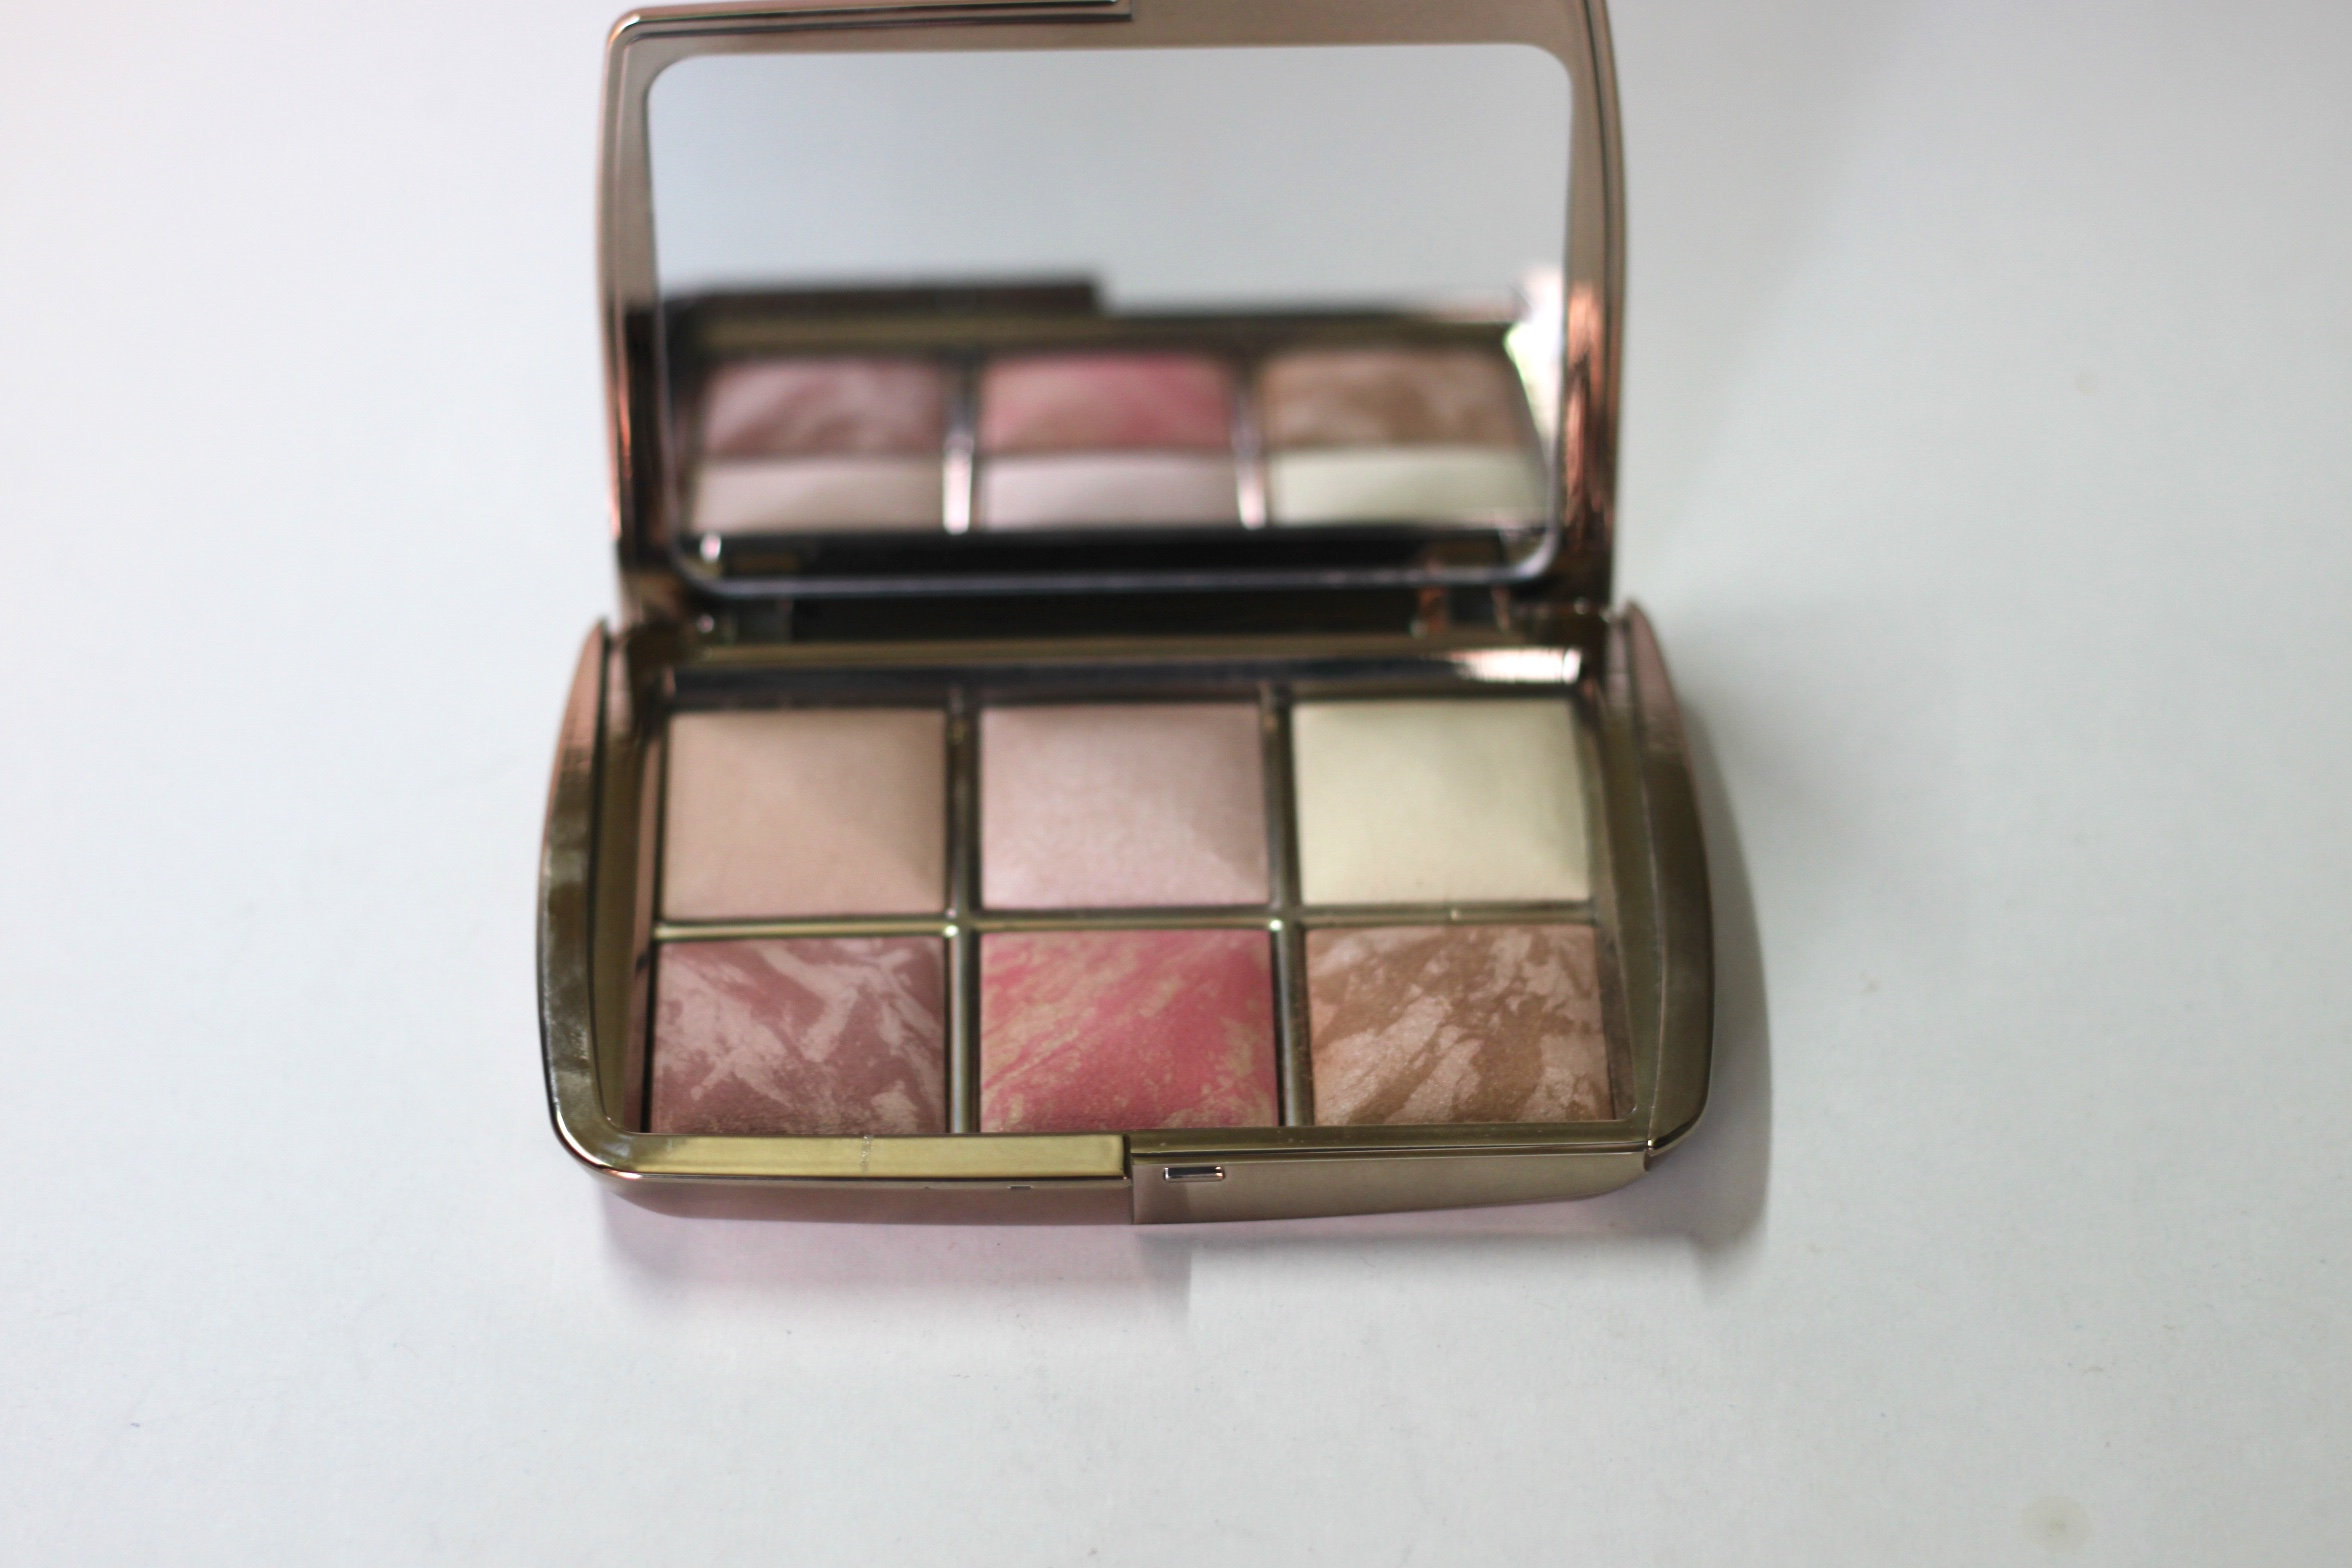 sephora haul, sephora haul 2015, sephora, hourglass ambient lighting edit, origins, sephora collection